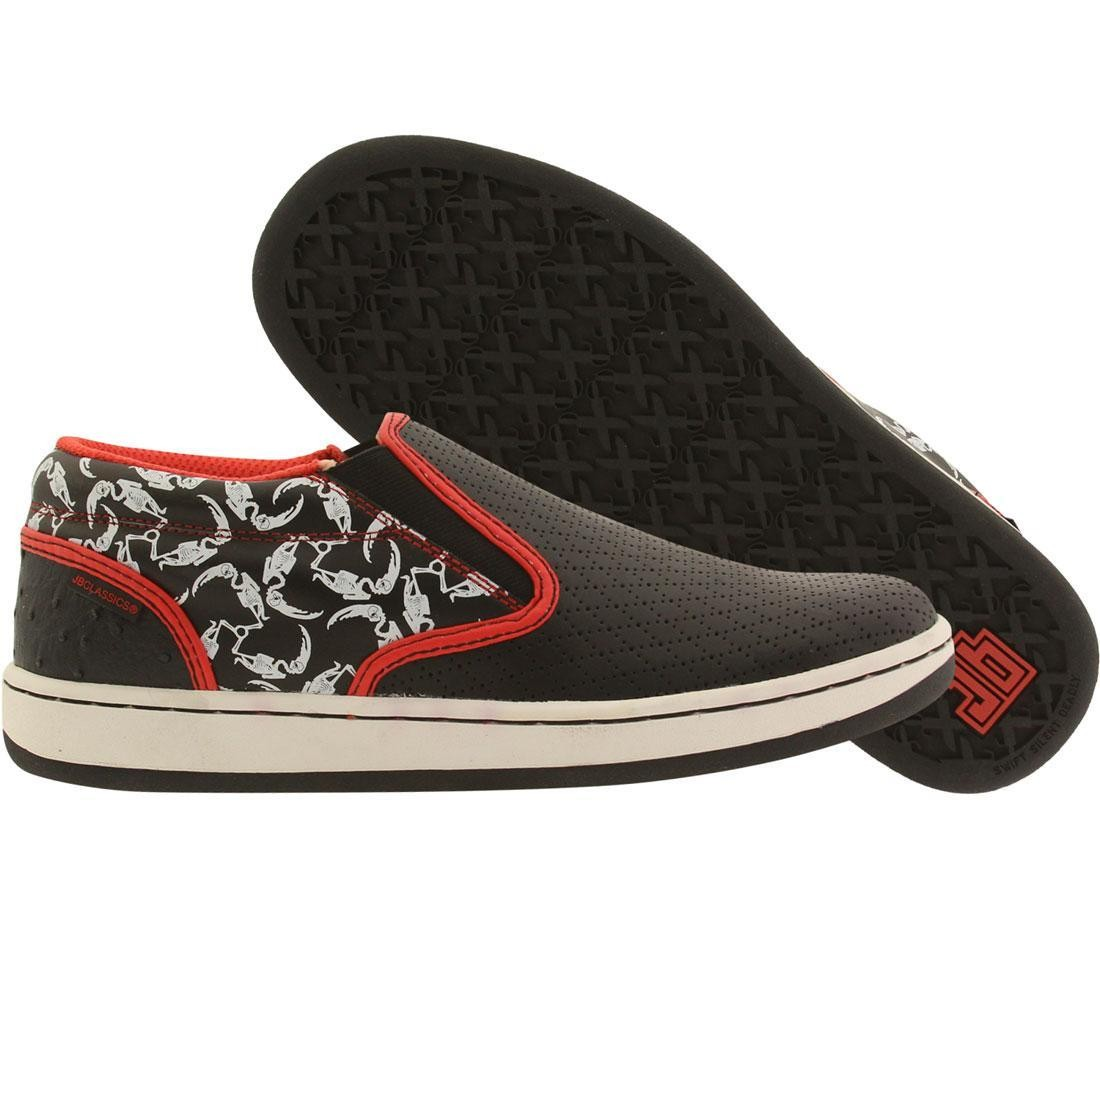 JB Classics Malta Slip Crescent - Bones (black / red / white)